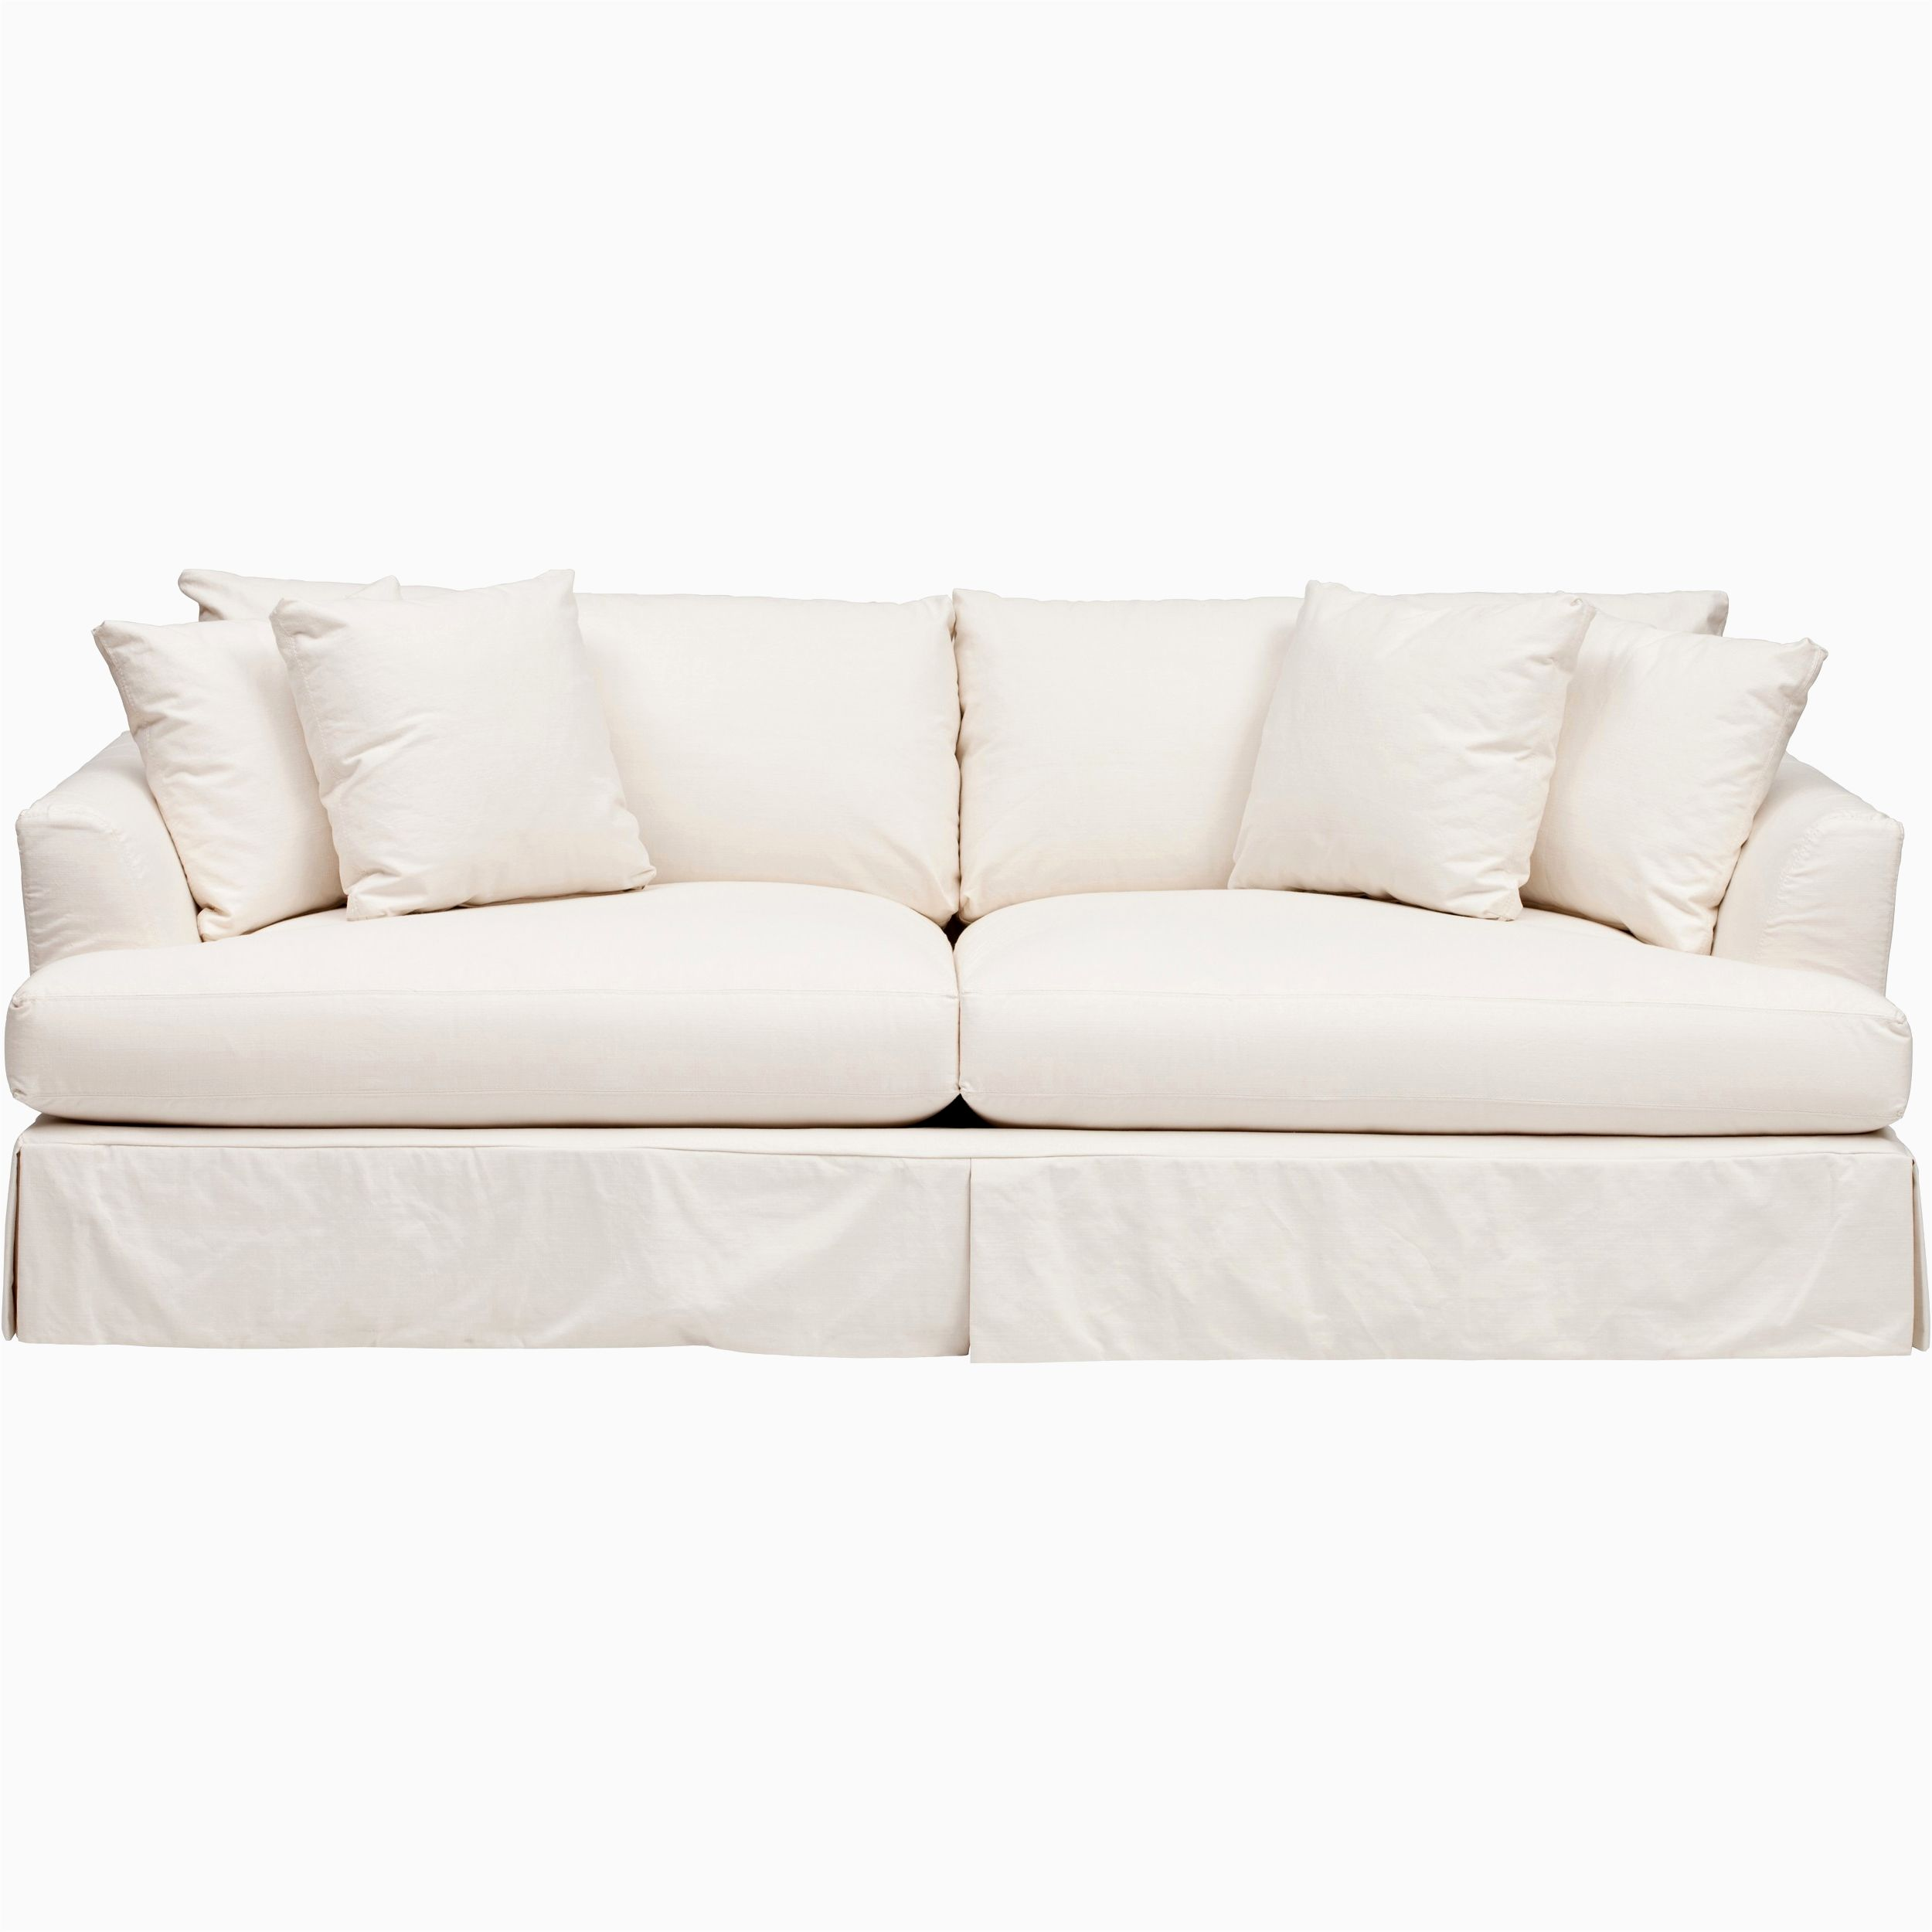 new slip covered sofas design-Modern Slip Covered sofas Concept